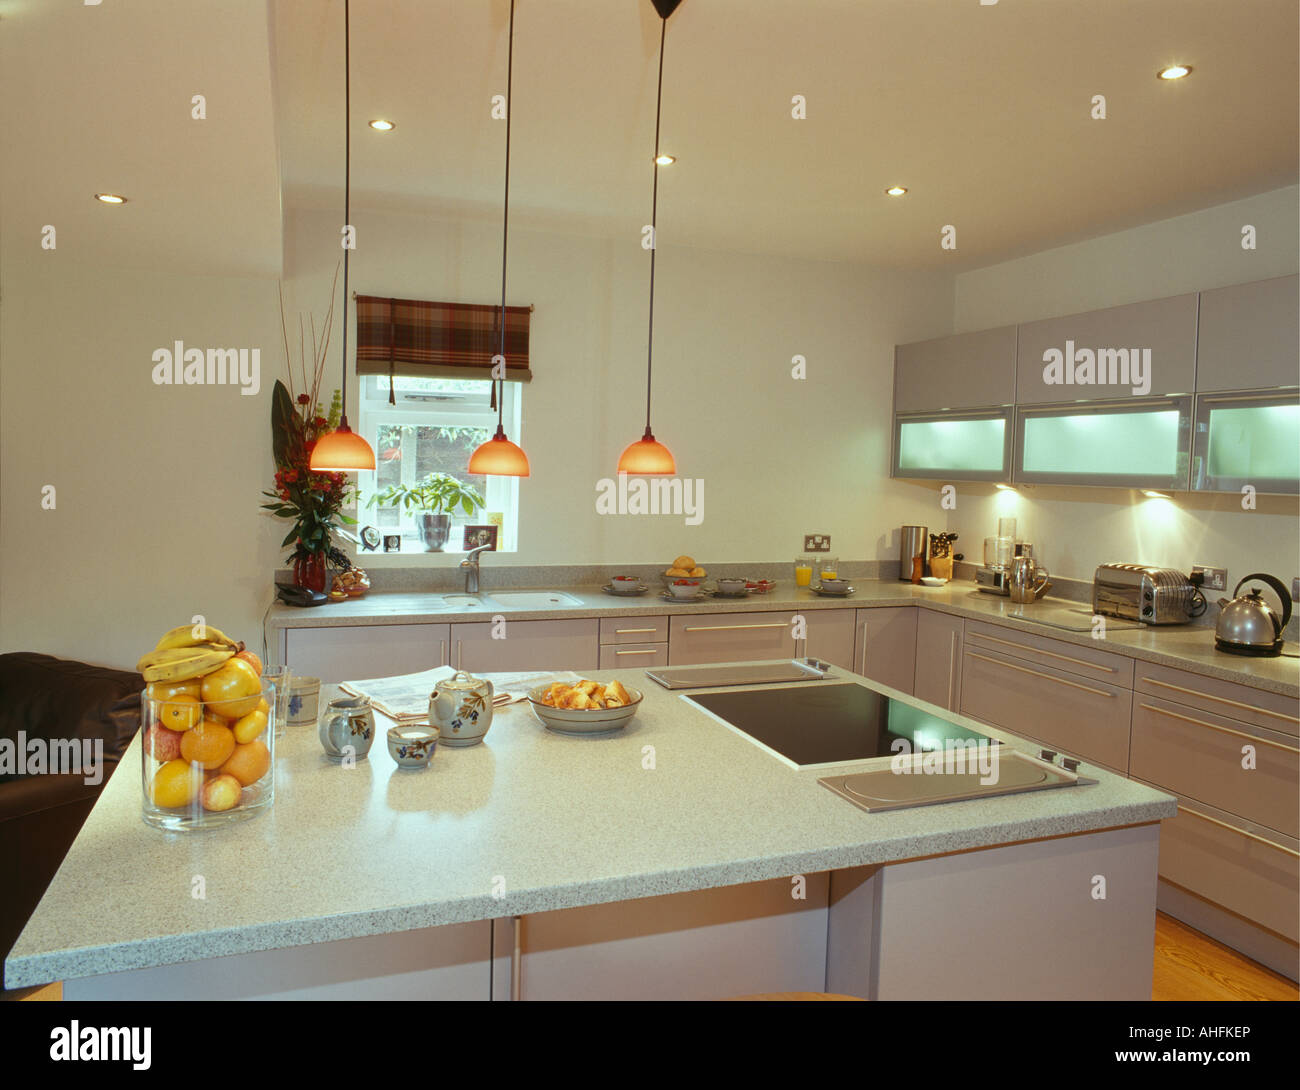 Pendant lights over island unit with halogen hob and oranges in ...